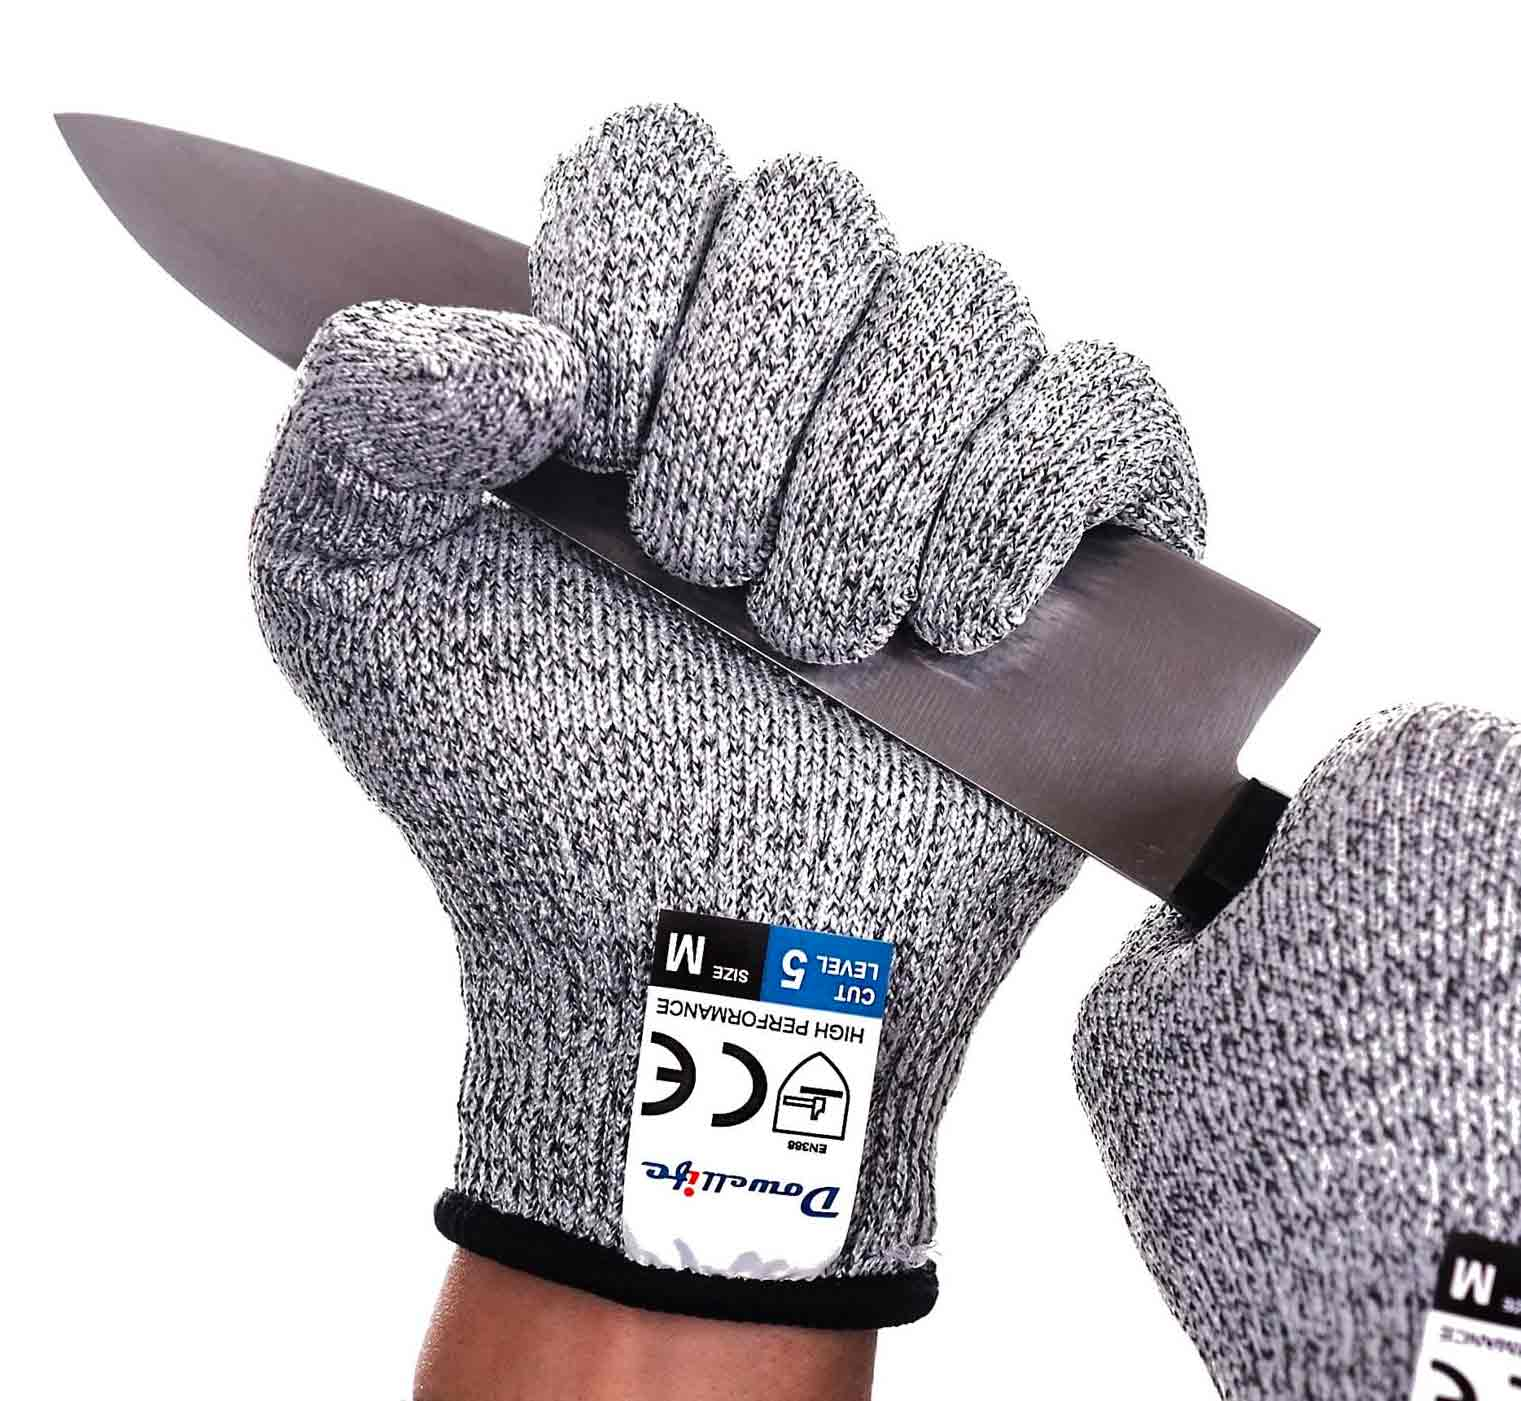 Dowellife Cut Resistant Gloves Food Grade Level 5 Protection, Safety Kitchen Cuts Gloves for Oyster Shucking, Fish Fillet Processing, Mandolin Slicing, Meat Cutting and Wood Carving, 1 Pair